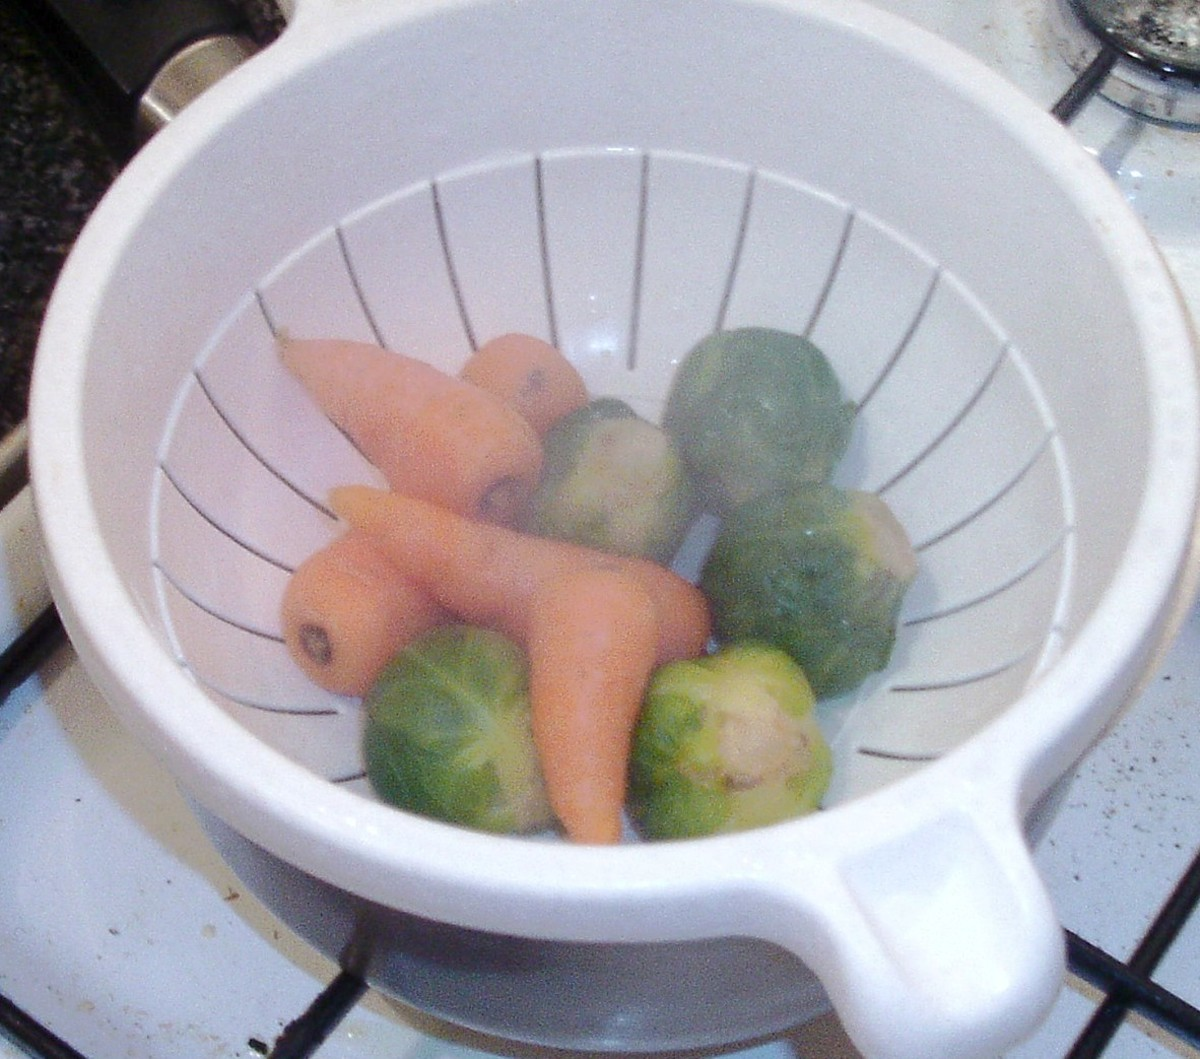 Sprouts and carrots are drained and set aside to cool